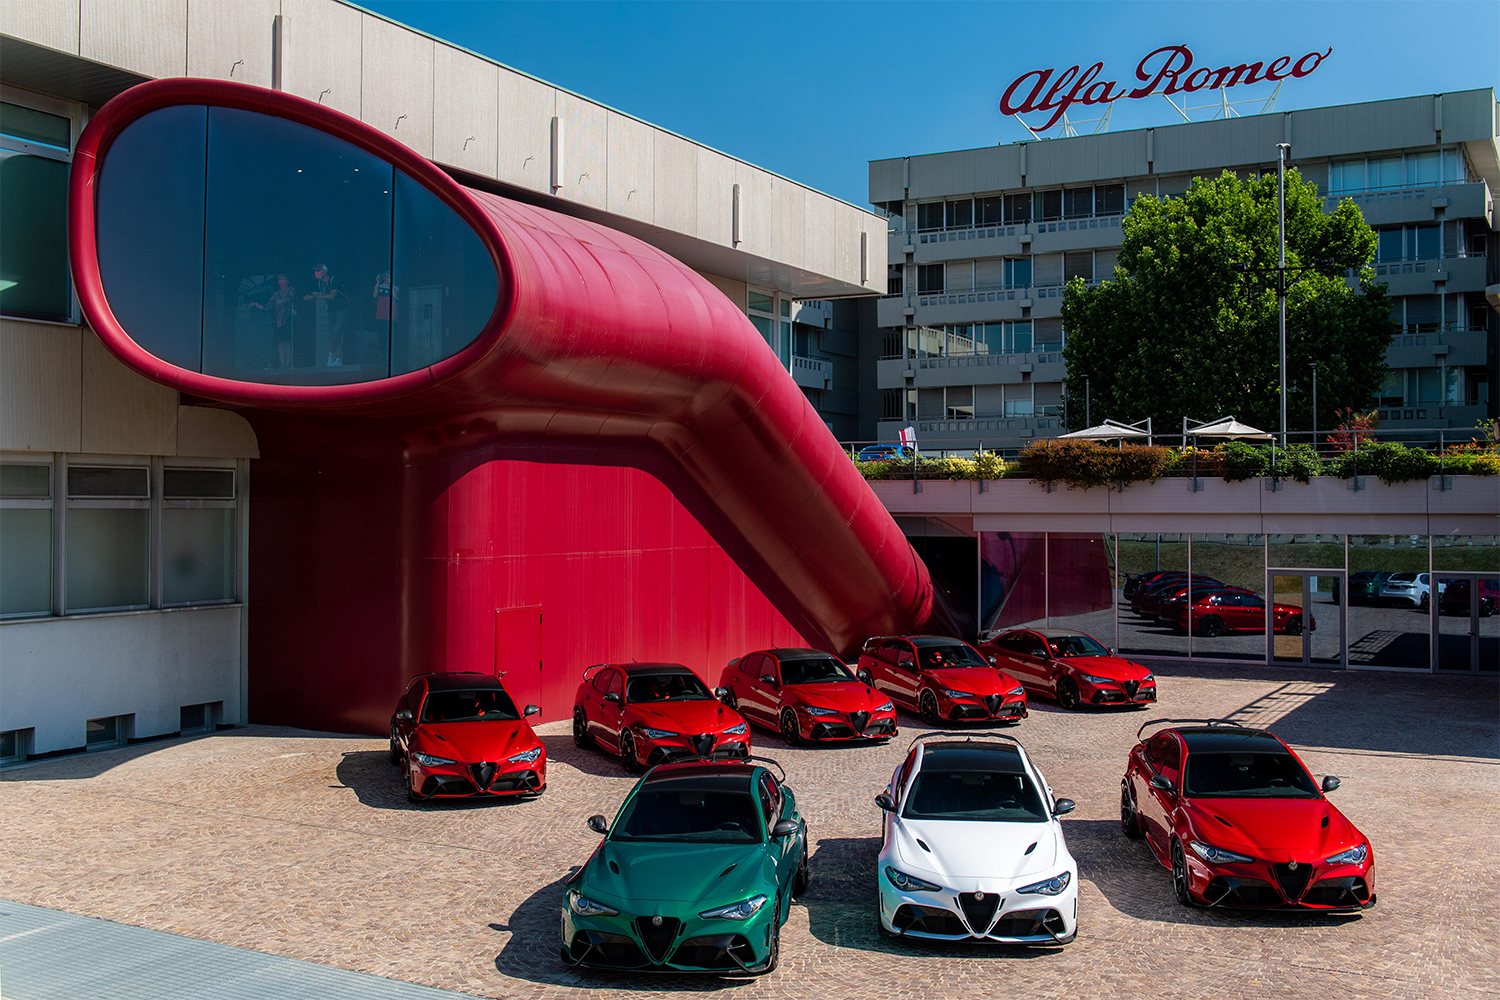 Alfa Romeo's vehicles lined up in red, green and white for the brand's 111th anniversary